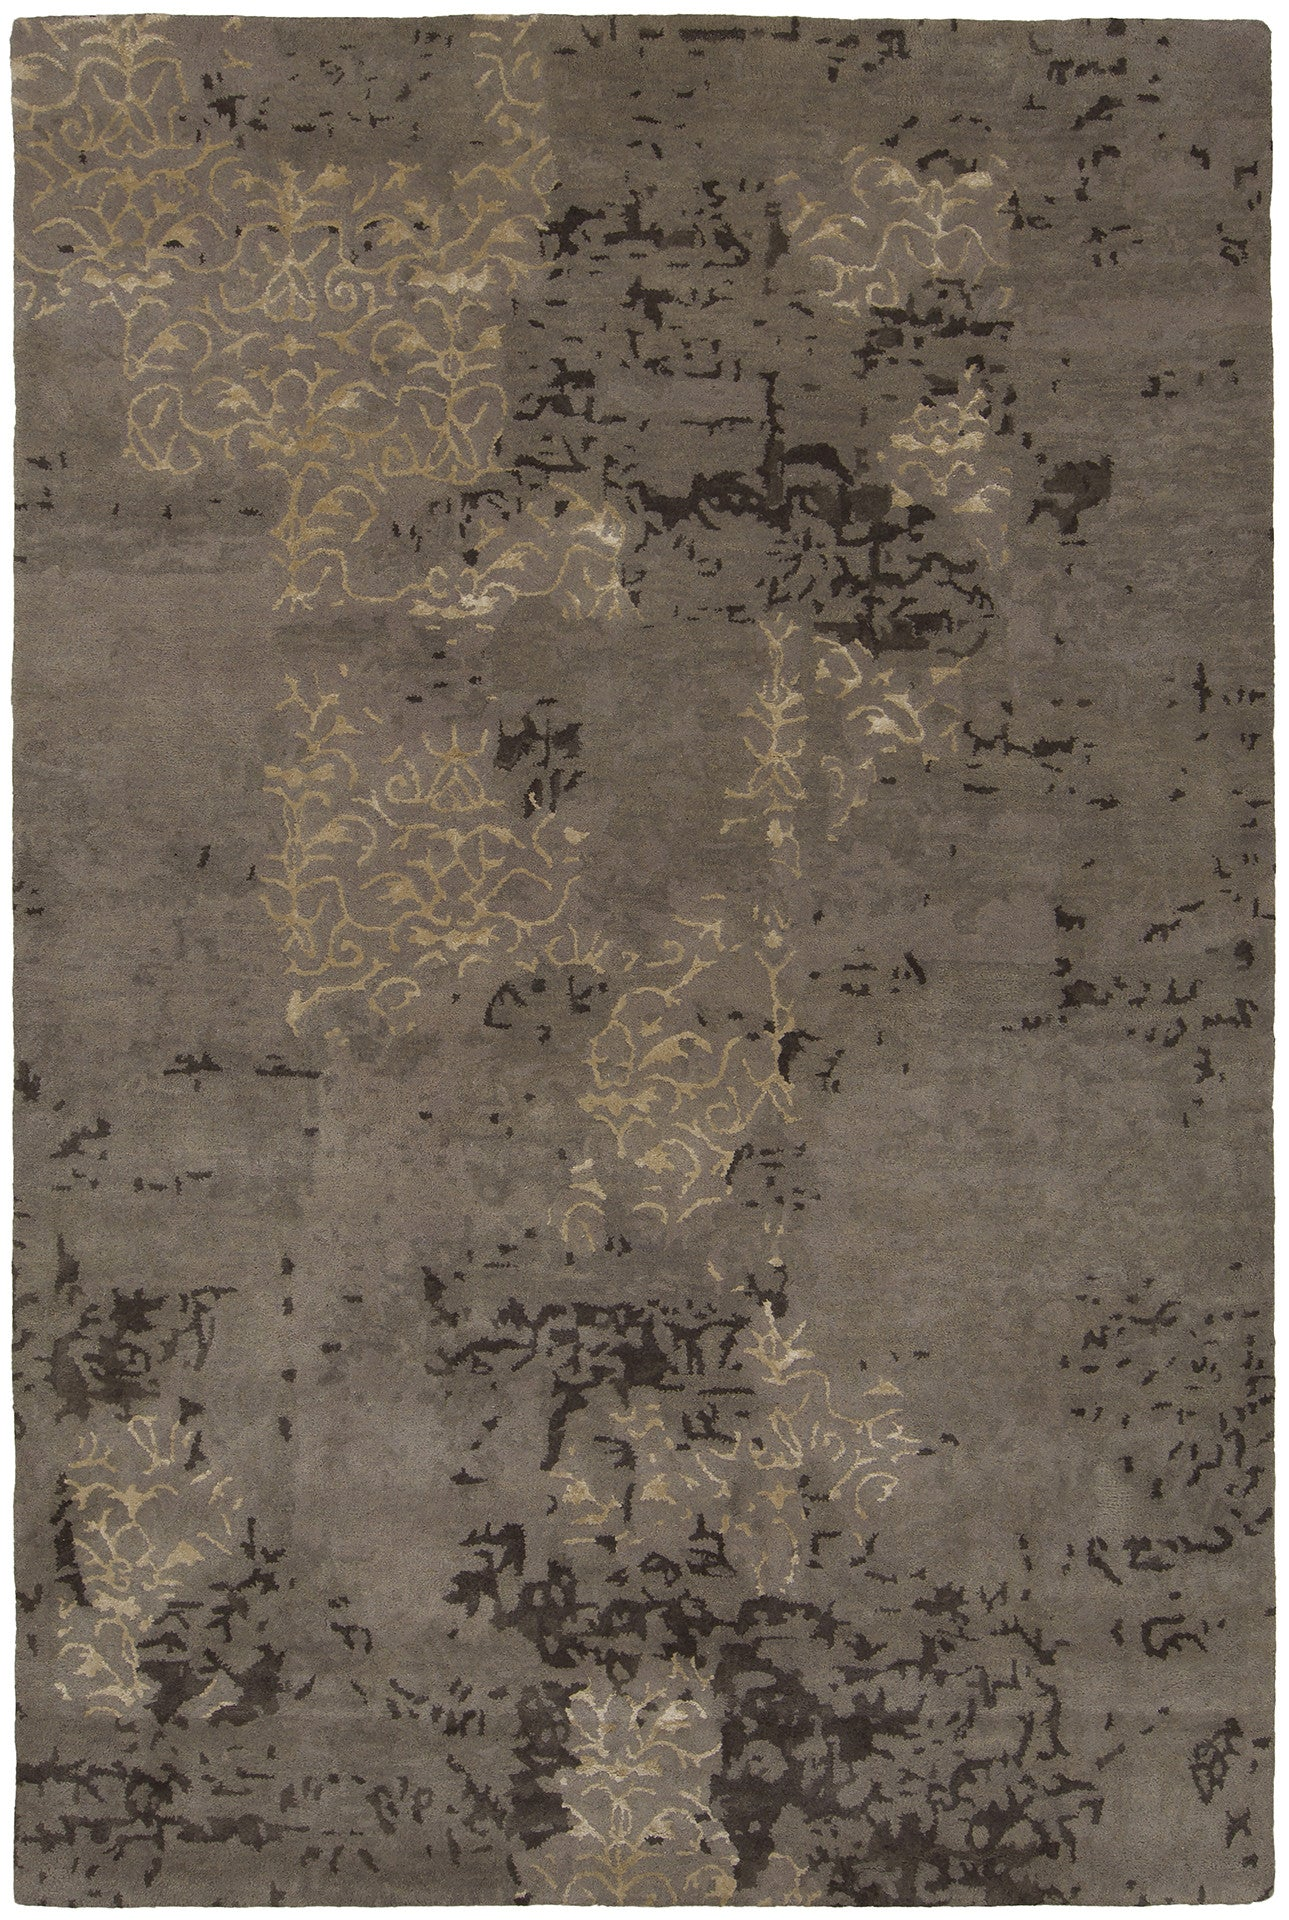 Rupec Collection Hand Tufted Area Rug In Taupe Brown